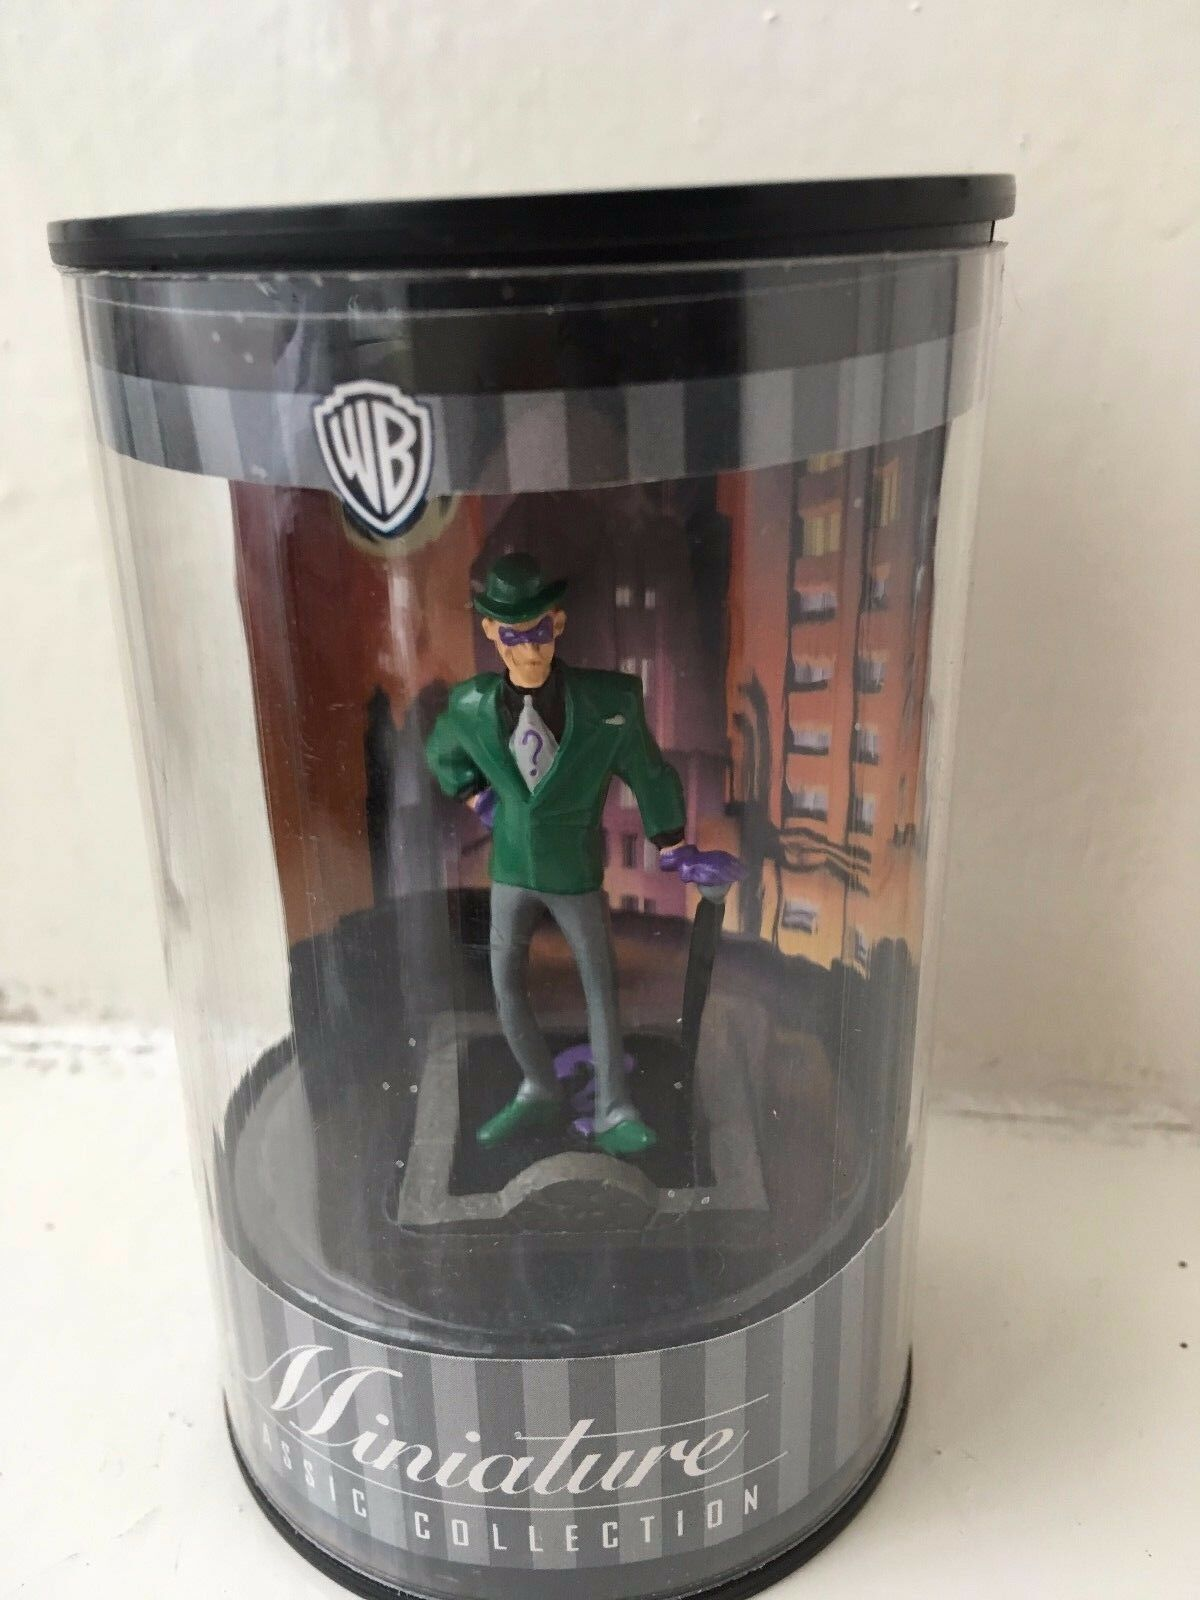 Warner bros miniatur - classic collection animierte der riddler figur batman